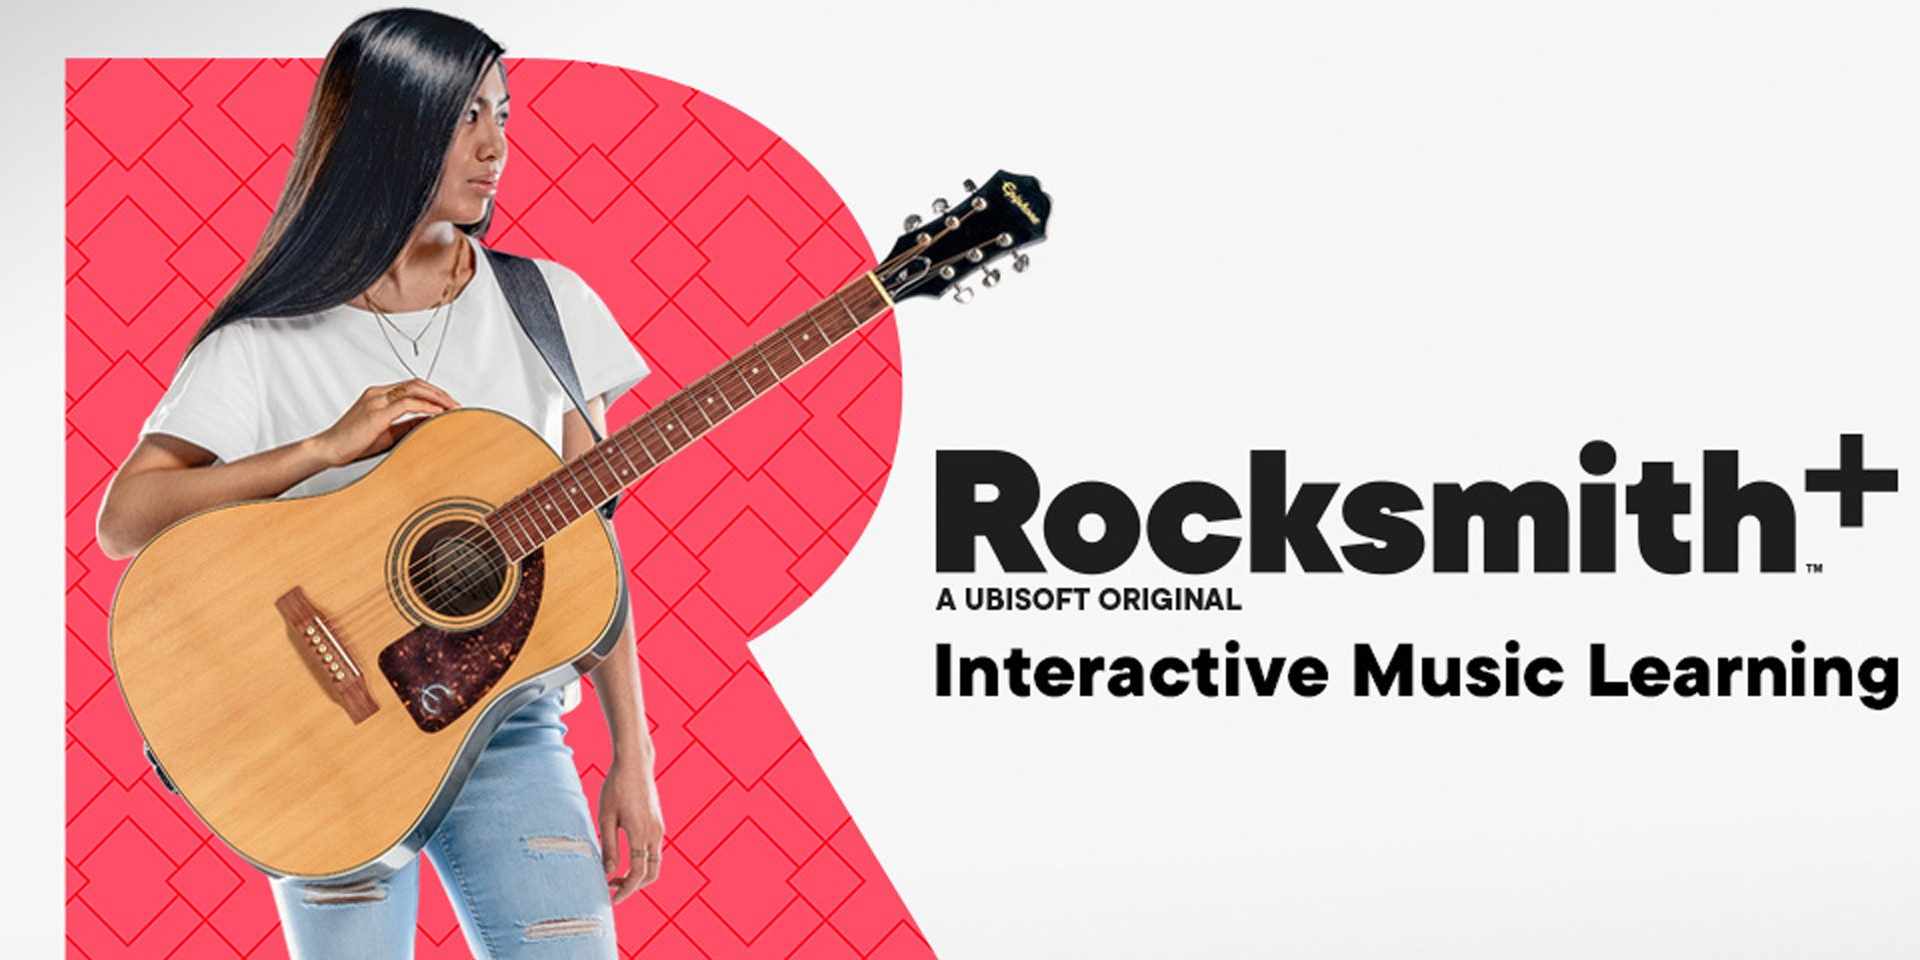 Level up your guitar skills on Rocksmith+ with your favorite bands' master recordings, real-time feedback, and more